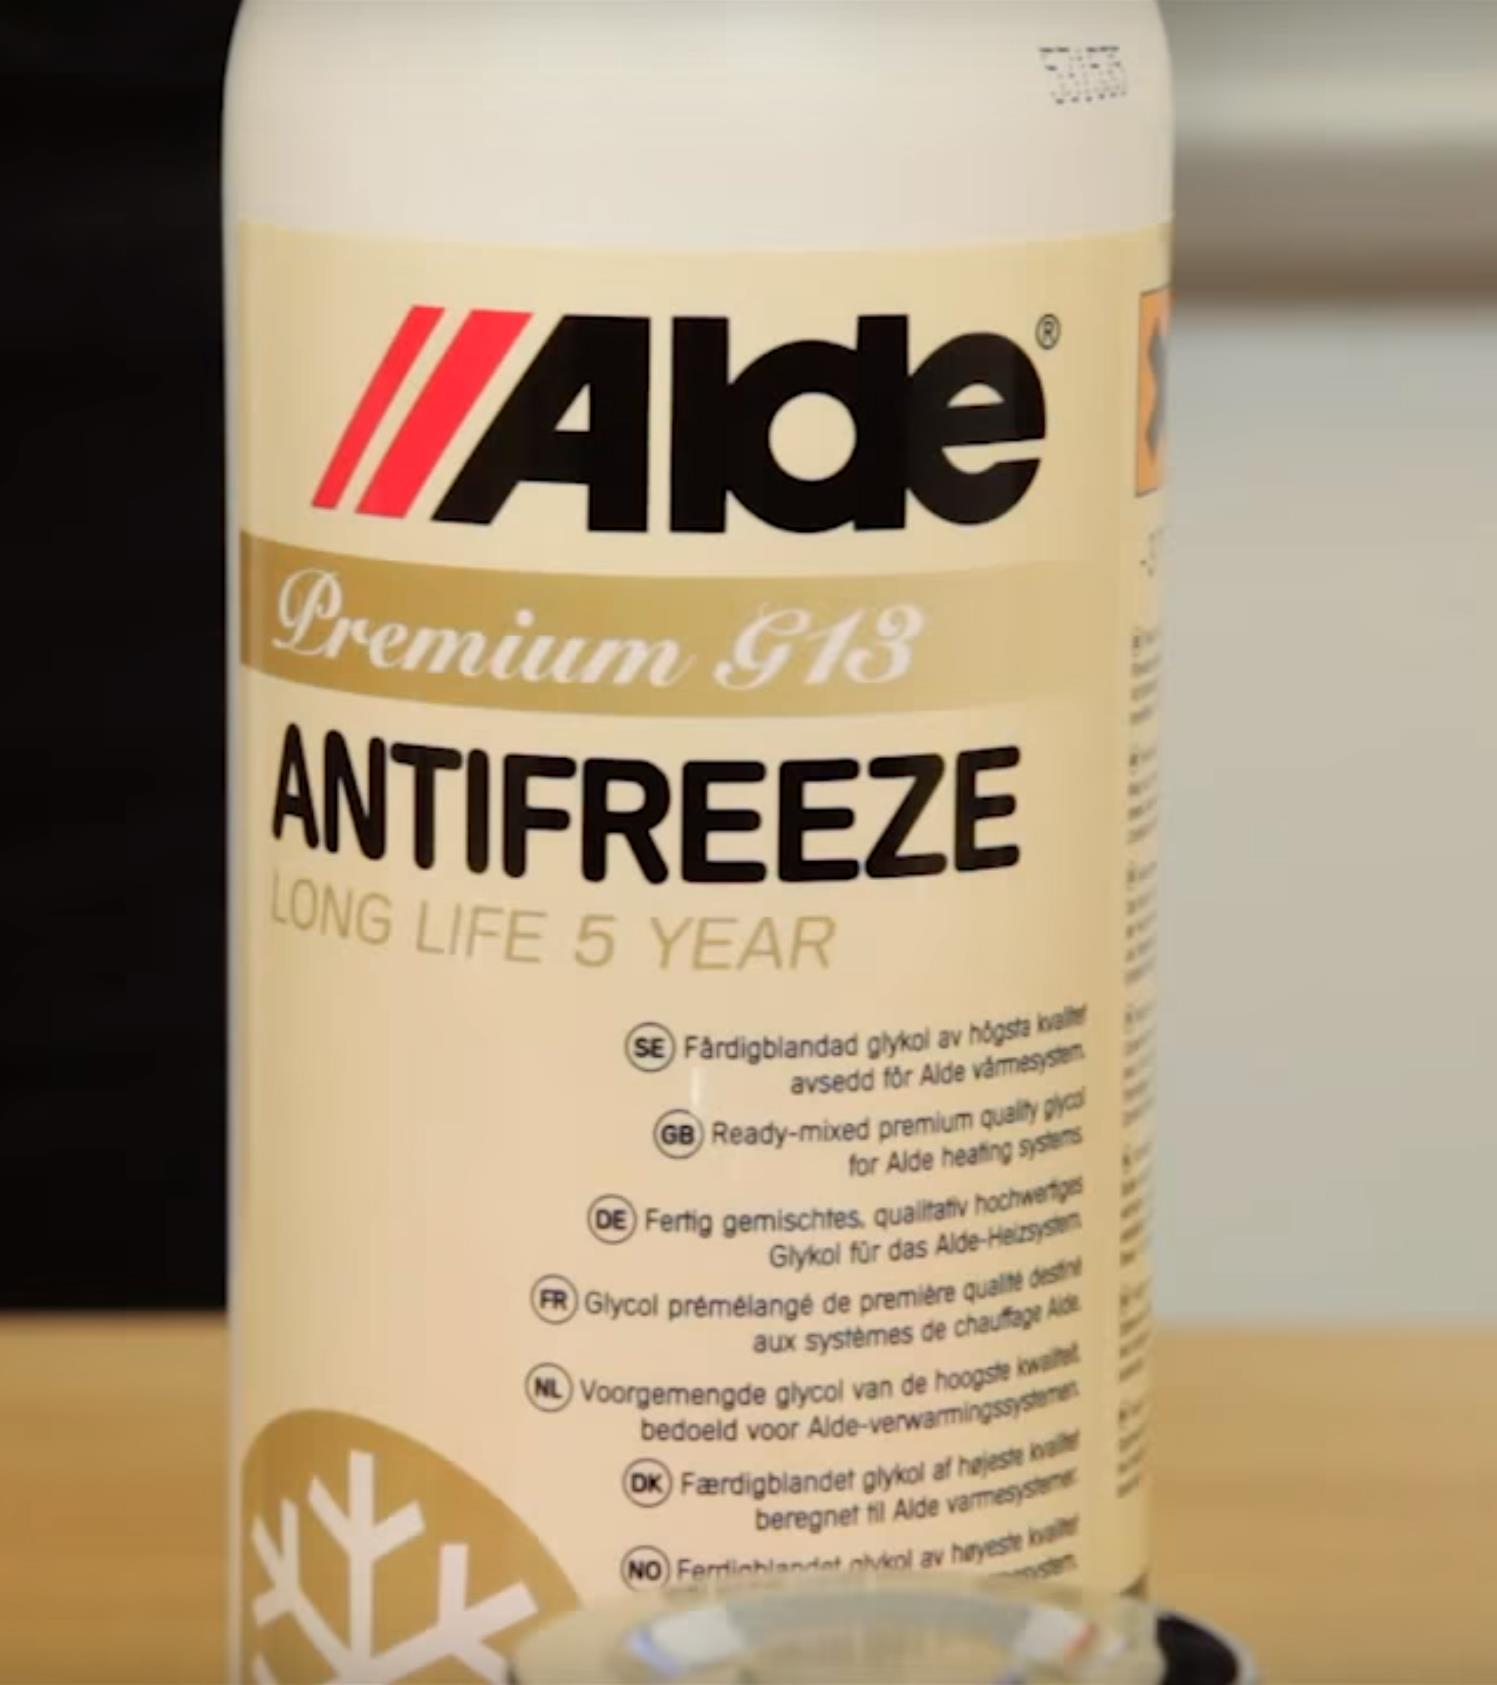 Alde's GS13 Antifreeze liquid.